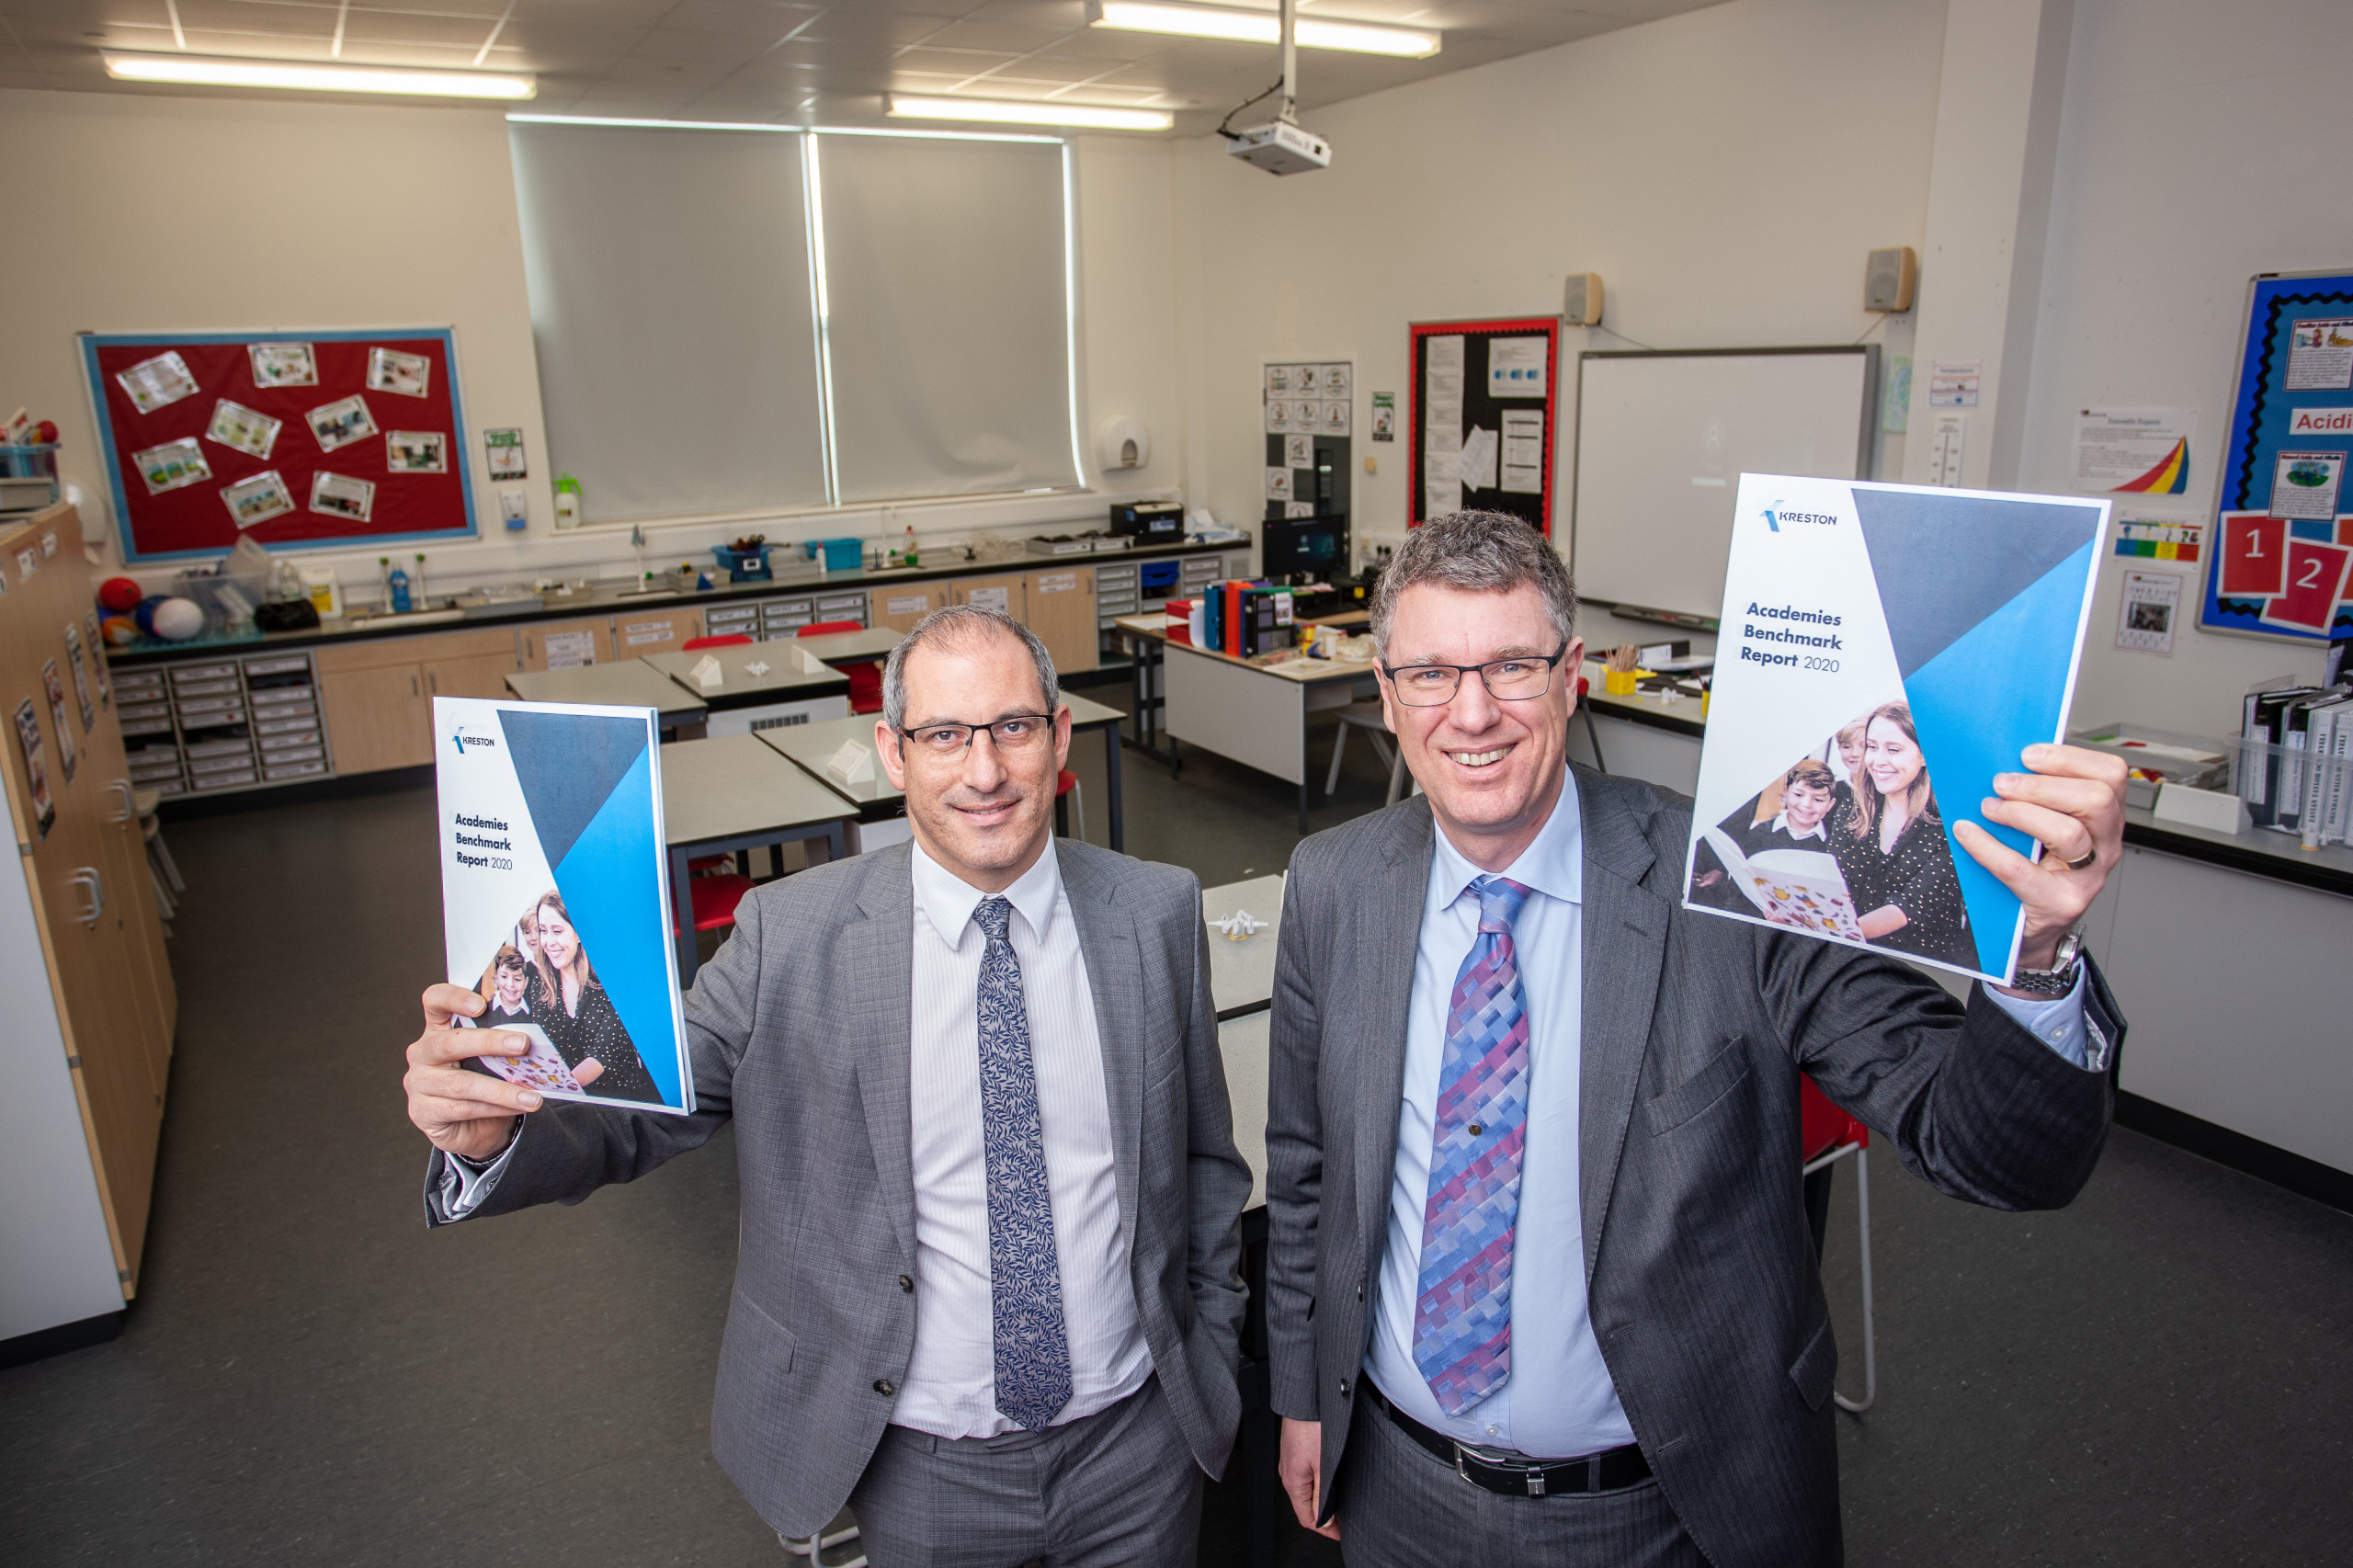 Chris Beaumont and Kevin Shotton with the Kreston Academies Benchmark Report 2020